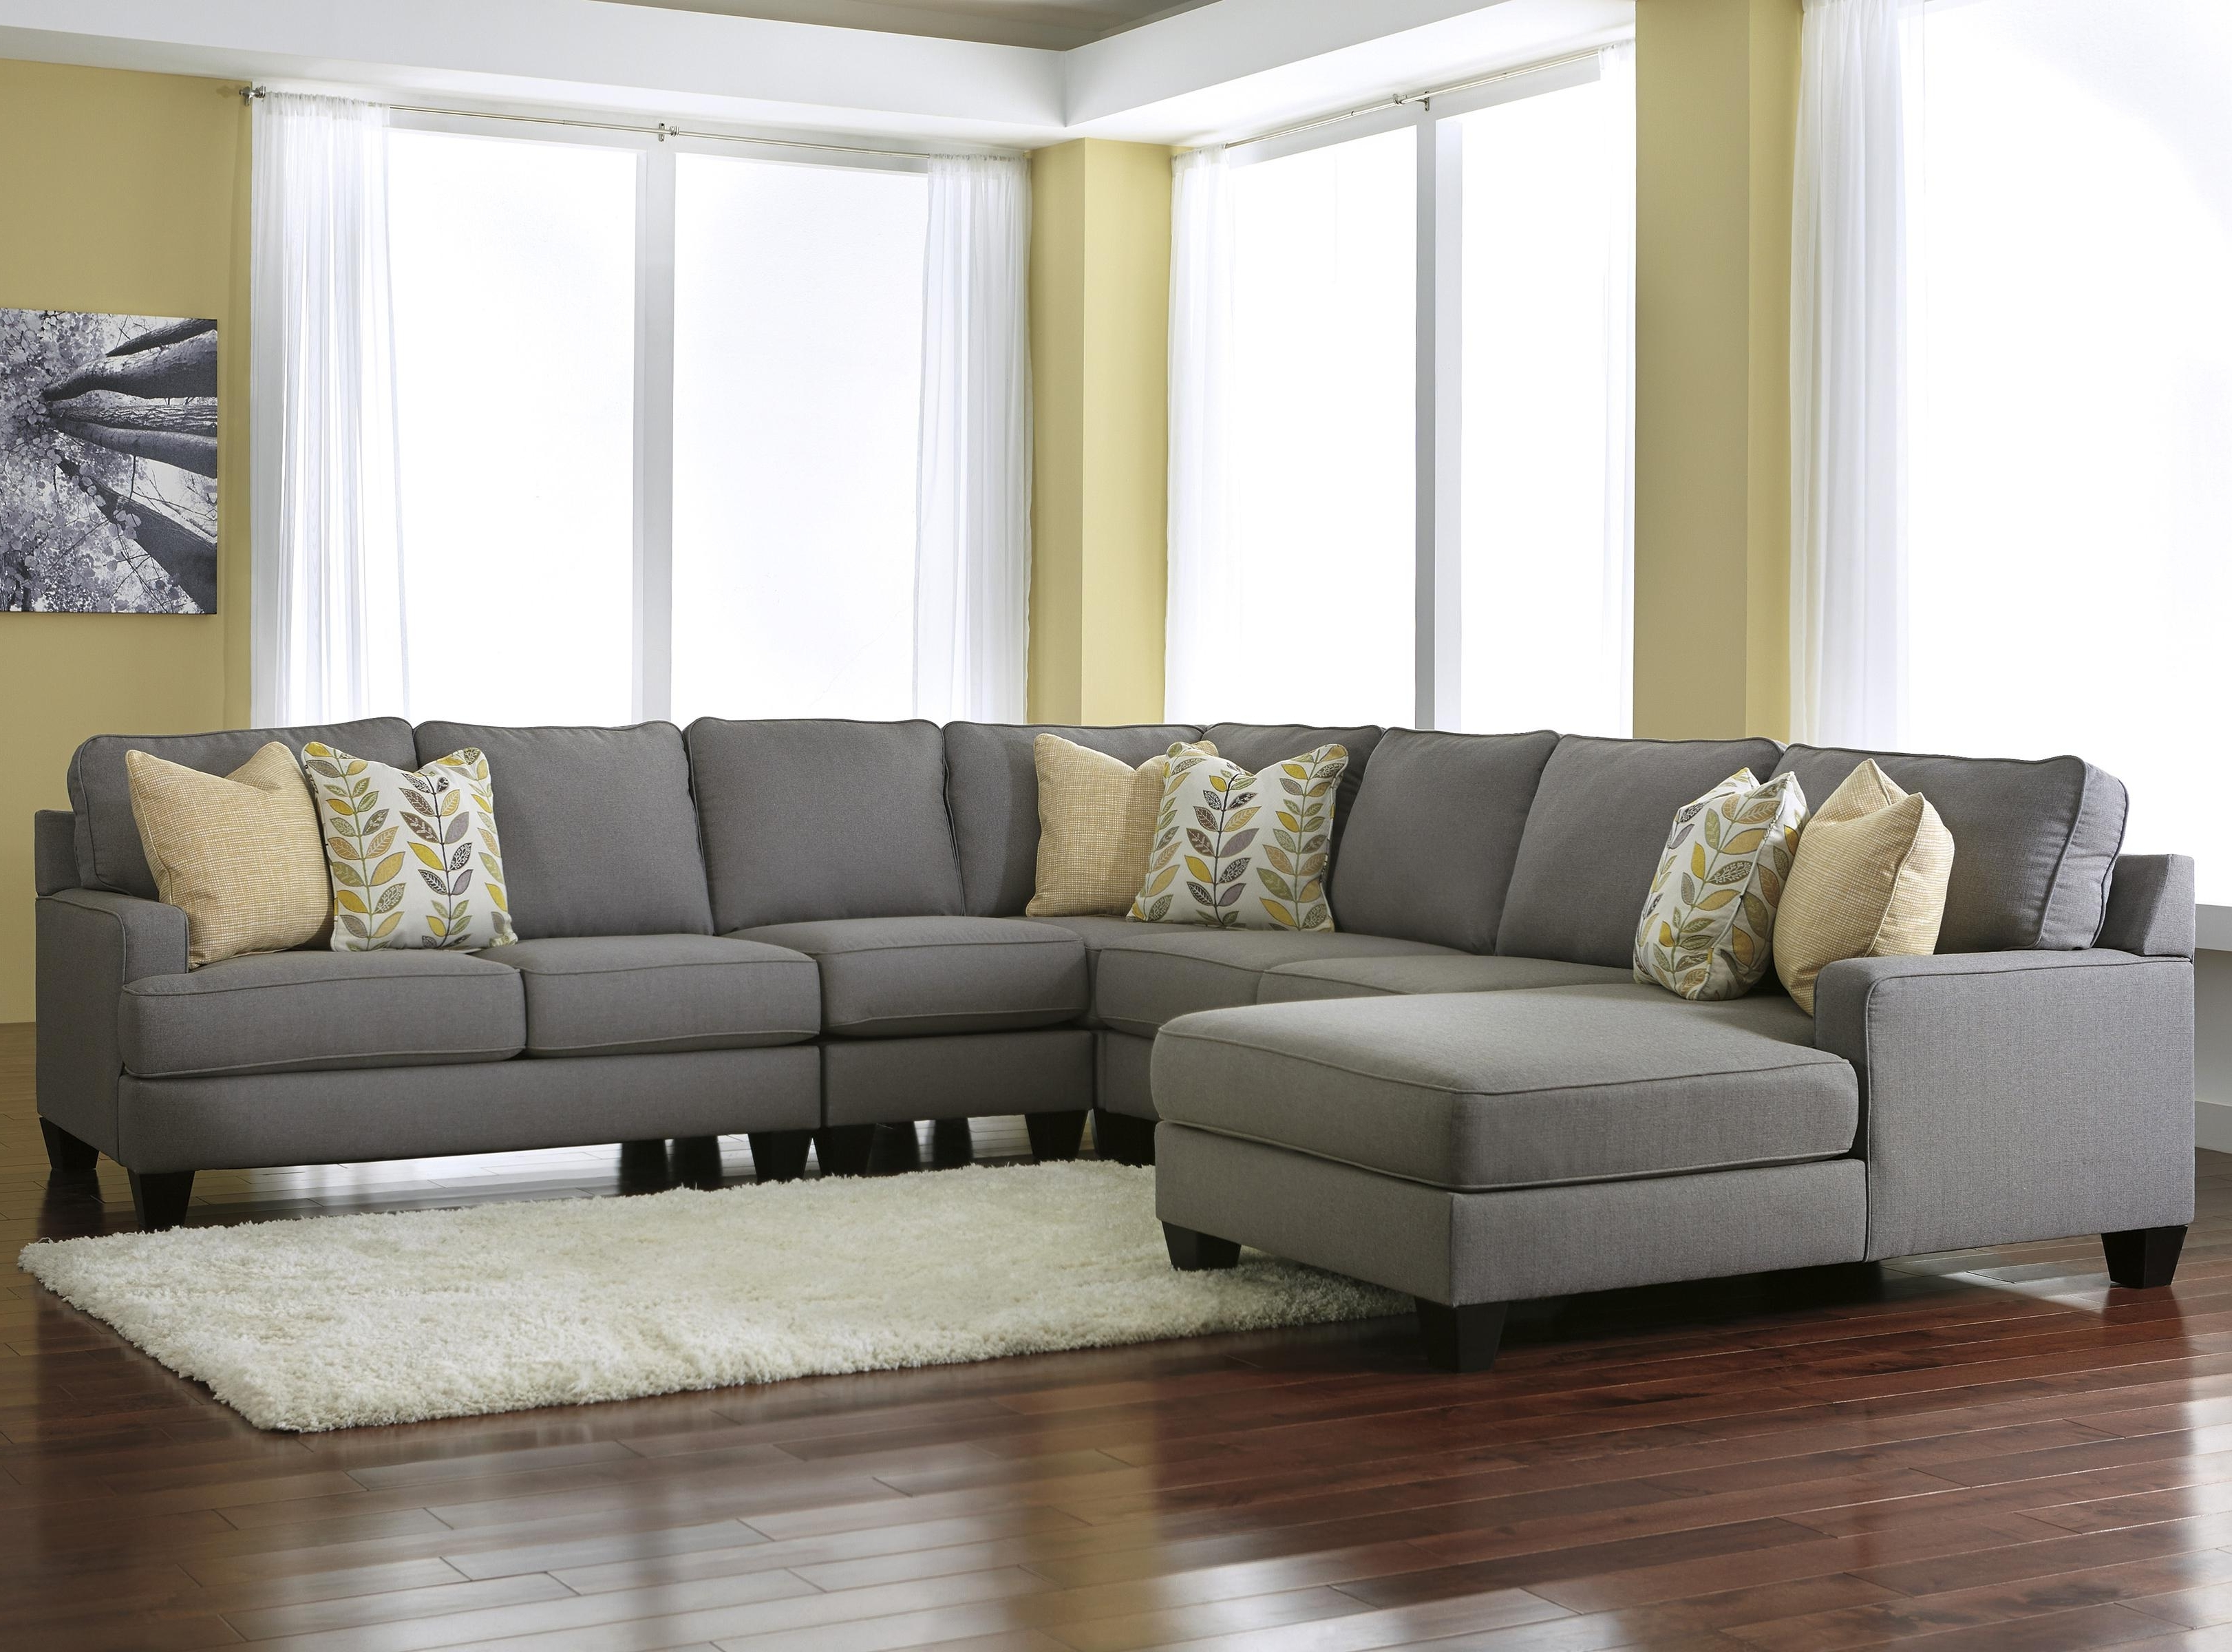 St Cloud Mn Sectional Sofas Intended For 2019 Signature Designashley Chamberly – Alloy Modern 5 Piece (View 6 of 20)